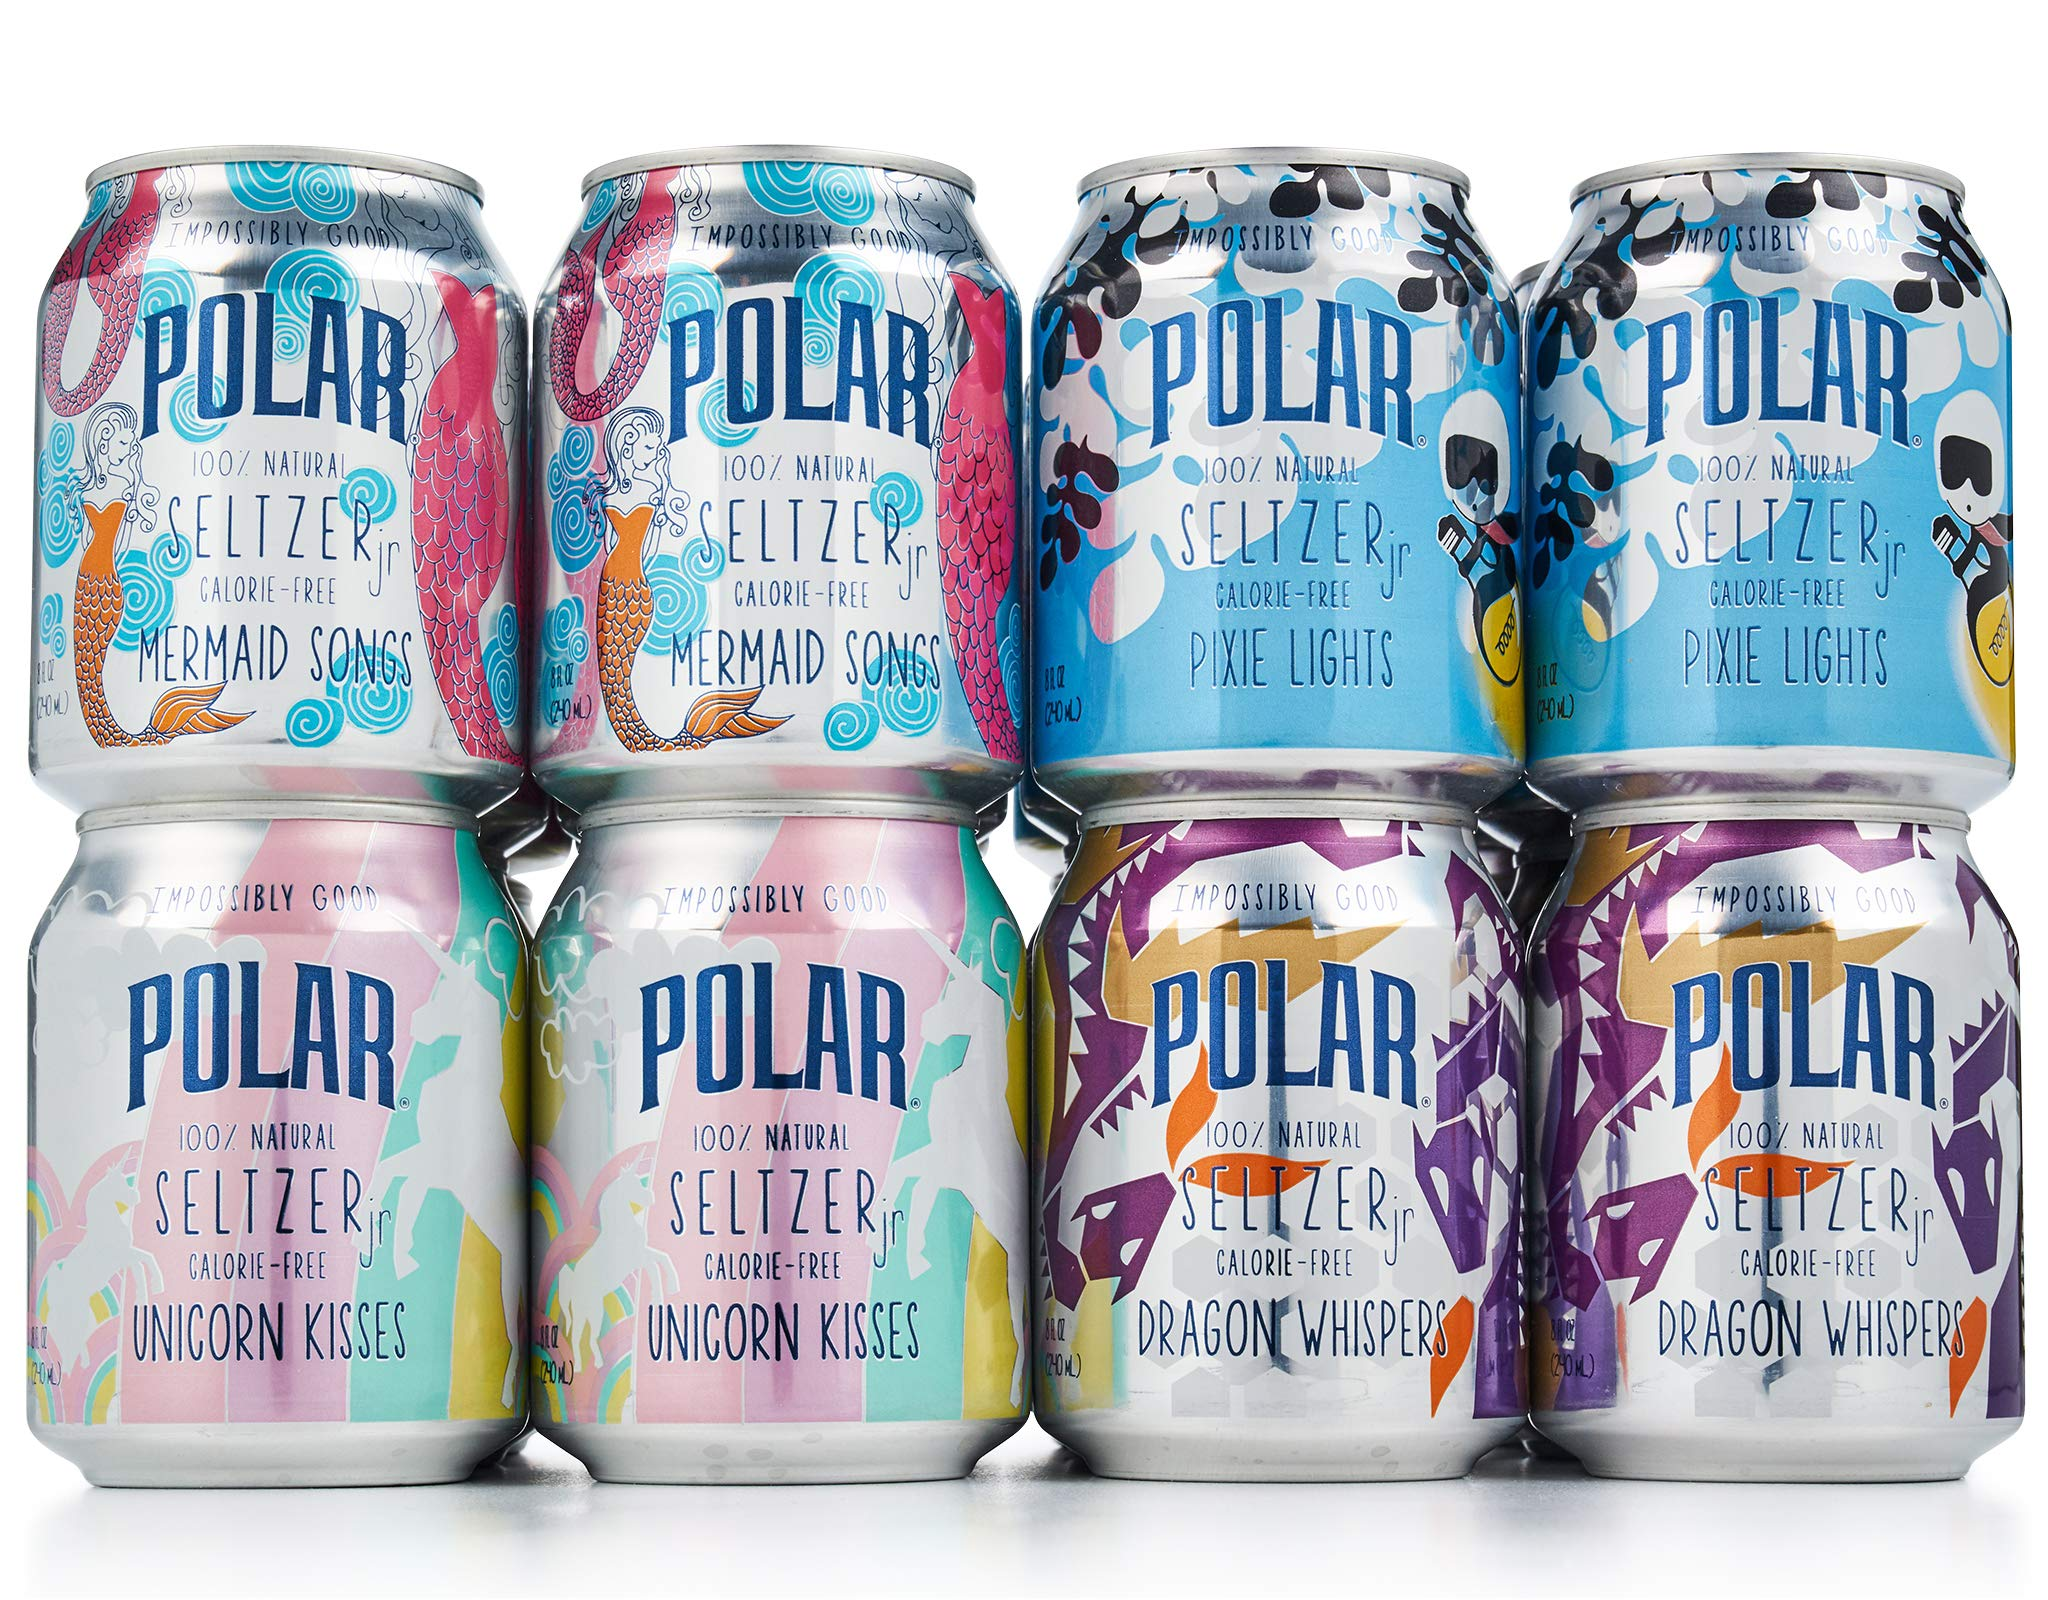 POLAR 100% Natural Seltzer Jr - 24 ct Variety Pack - The Impossibly Good Collection (Unicorn Kisses, Pixie Lights, Mermaid Songs, Dragon Whispers) by POLAR